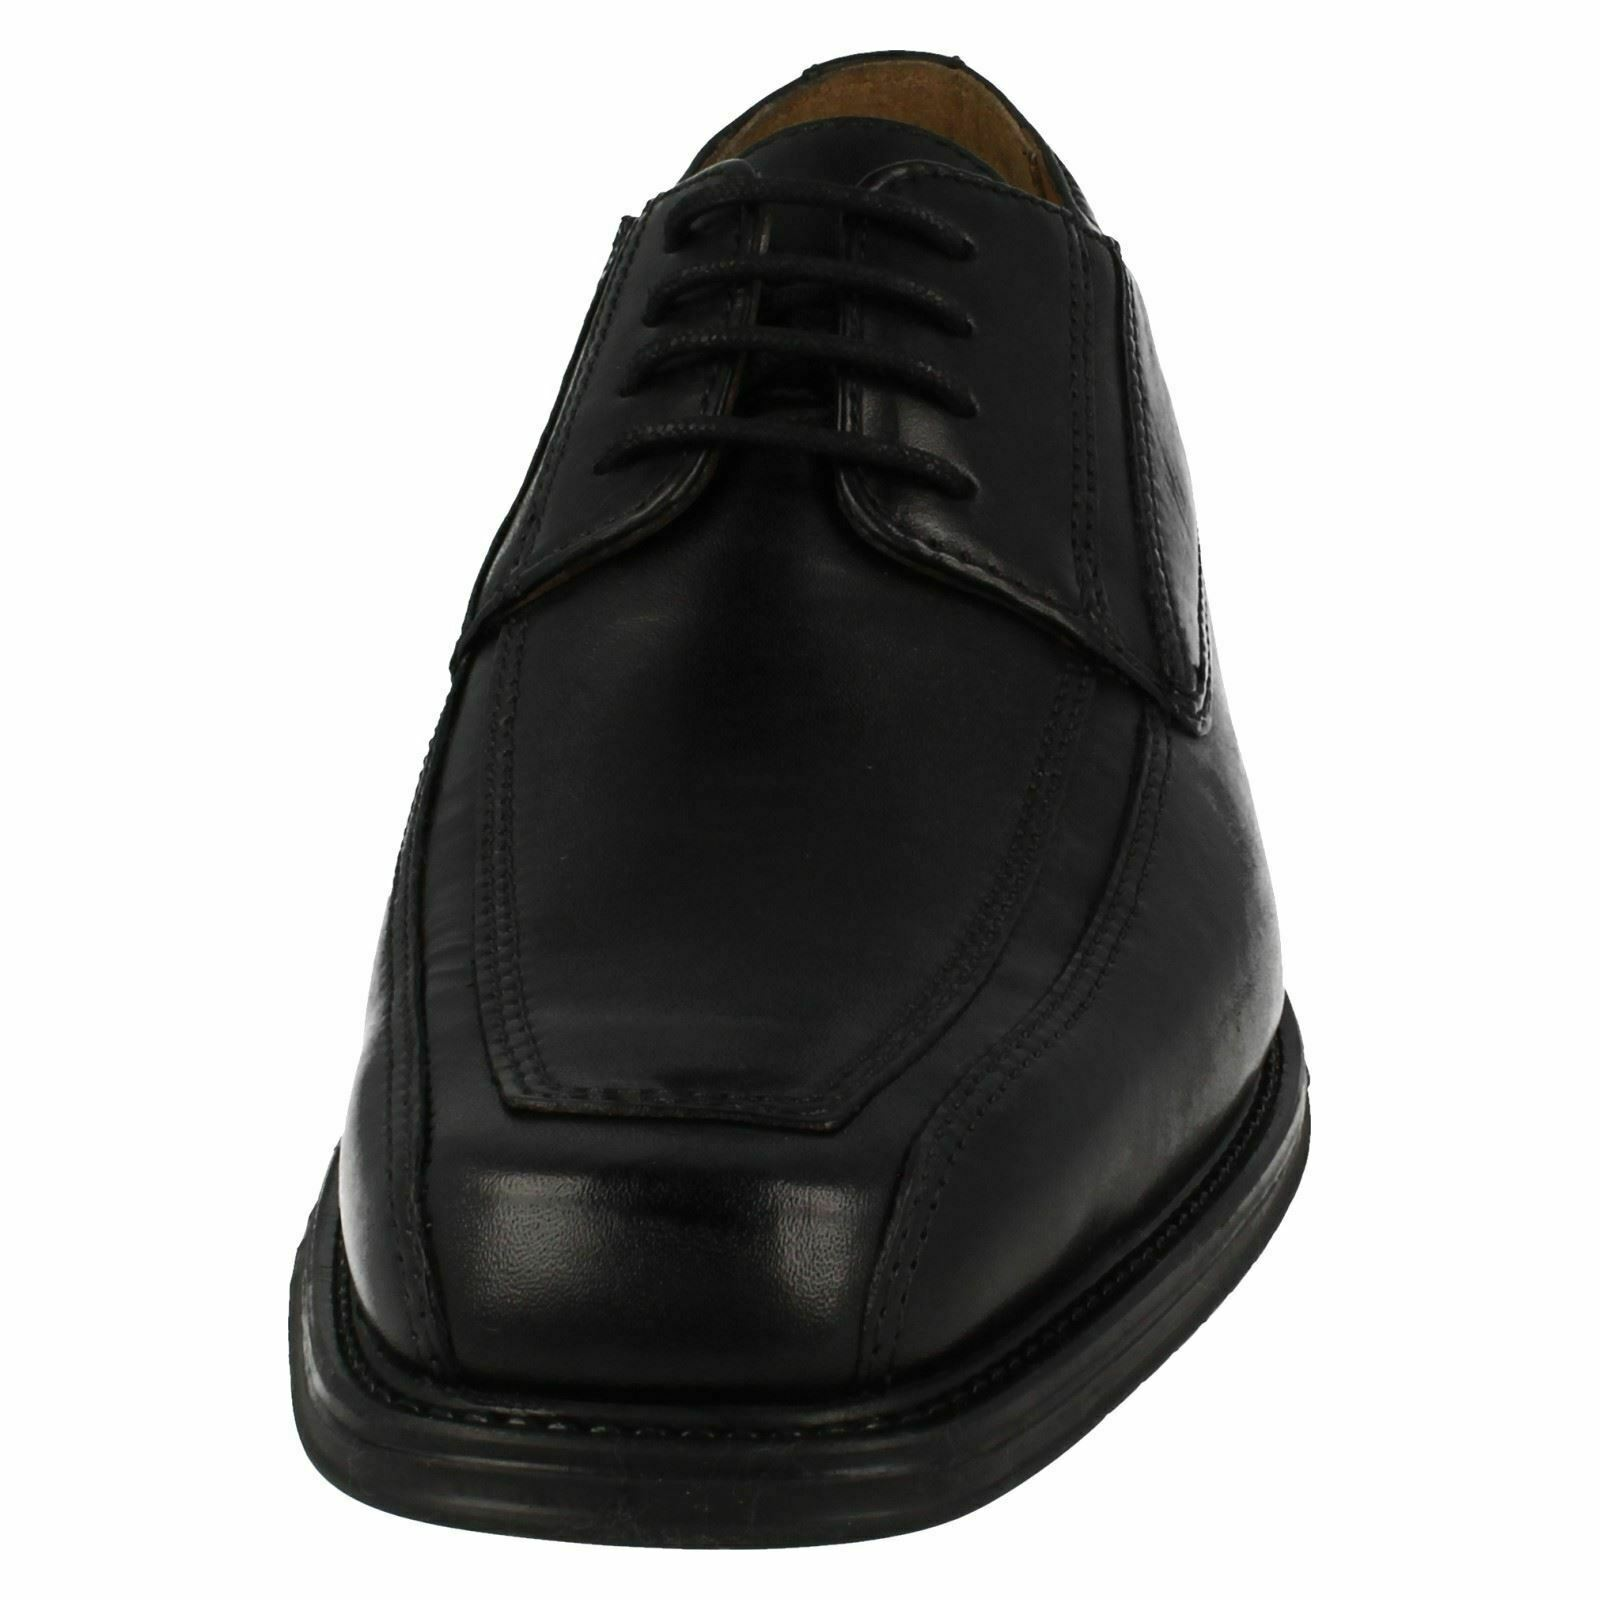 DRIGGS DRIGGS DRIGGS WALK MENS CLARKS schwarz LEATHER LACE UP SMART FORMAL OFFICE WORK schuhe f56117